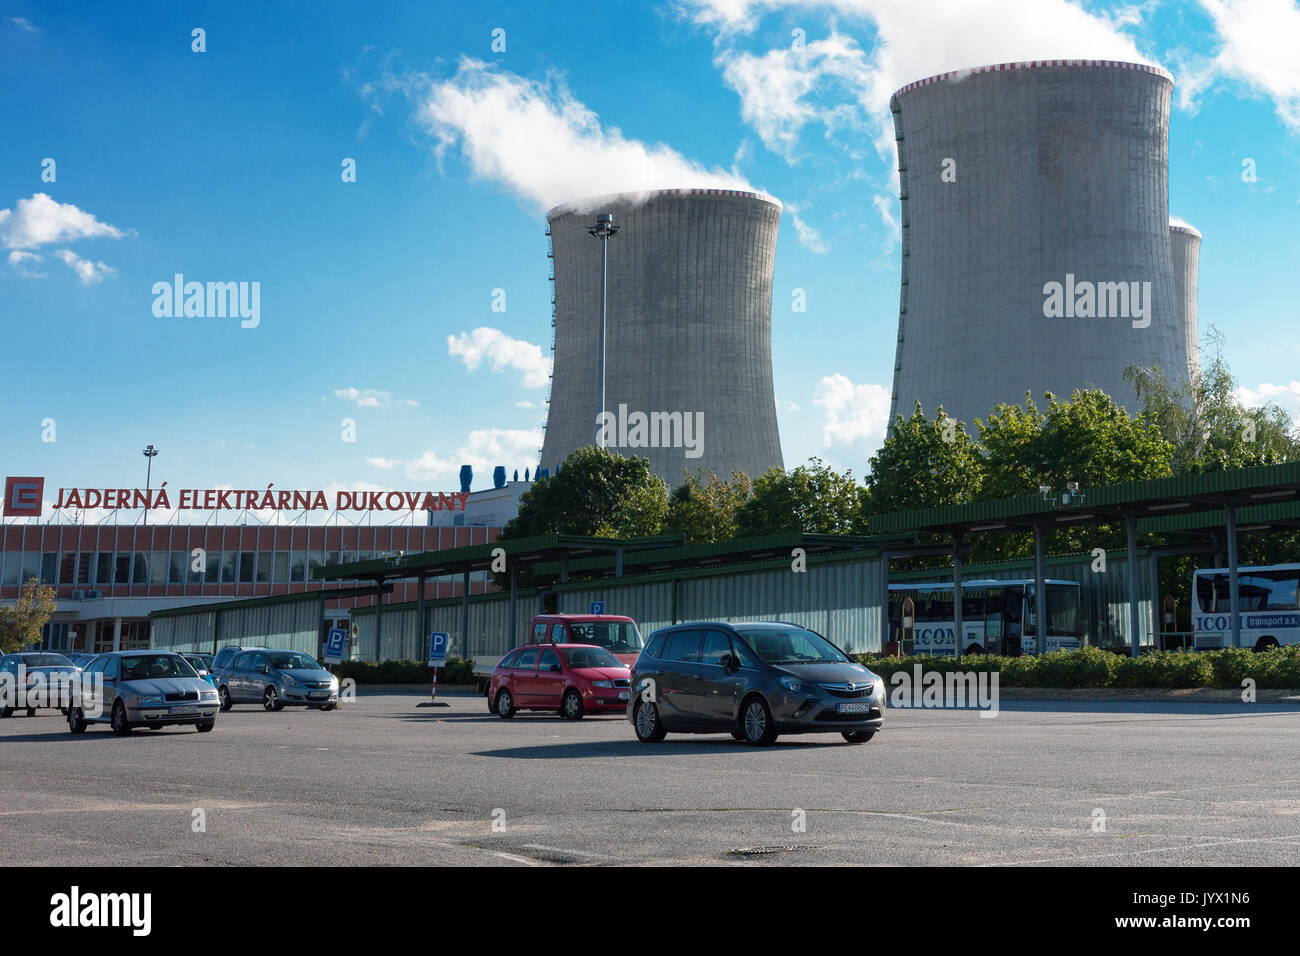 Dukovany, Czech Republic - July 7, 2017 : Parking space before entering the nuclear power station Dukovany on July 7, 2017 in Dukovany, Czech Republic - Stock Image